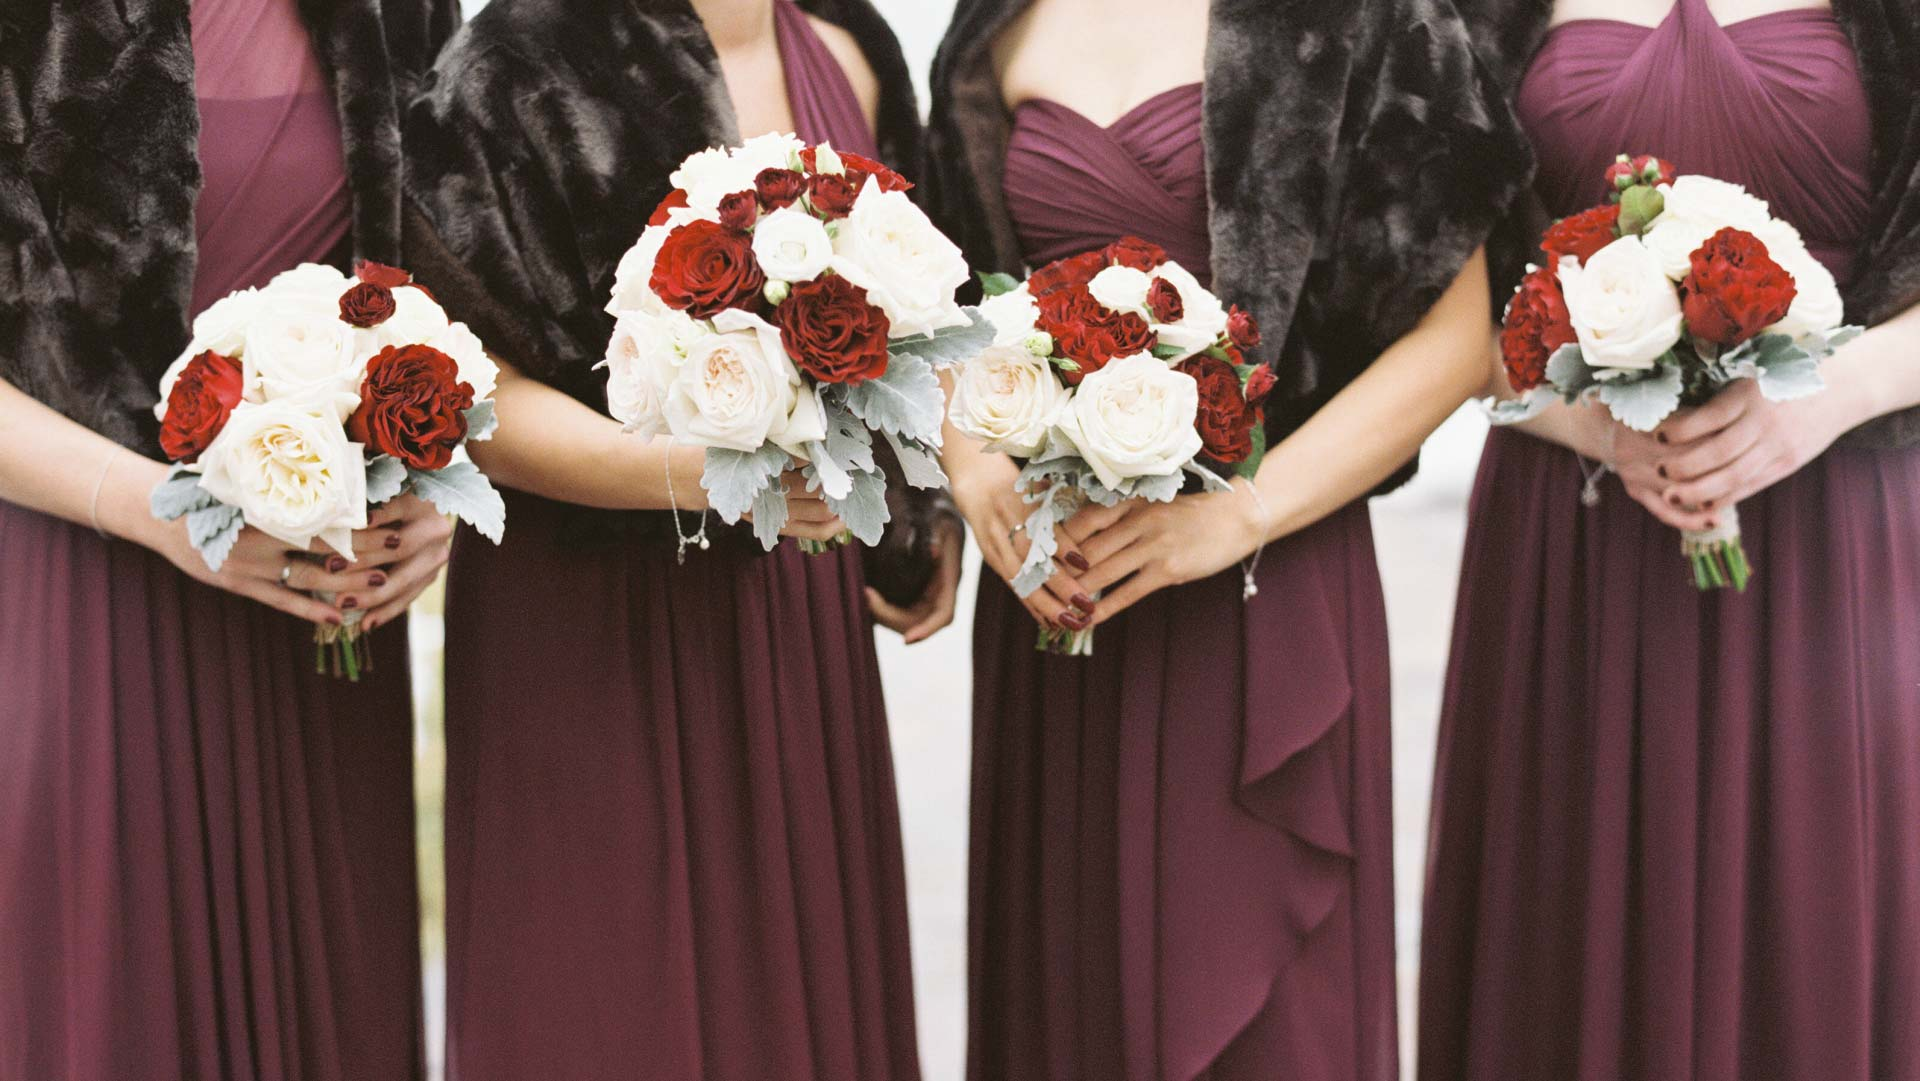 Burgundy bridesmaids with fur stoles white and red bouquet | The Ivy Lea Club | AMBphoto